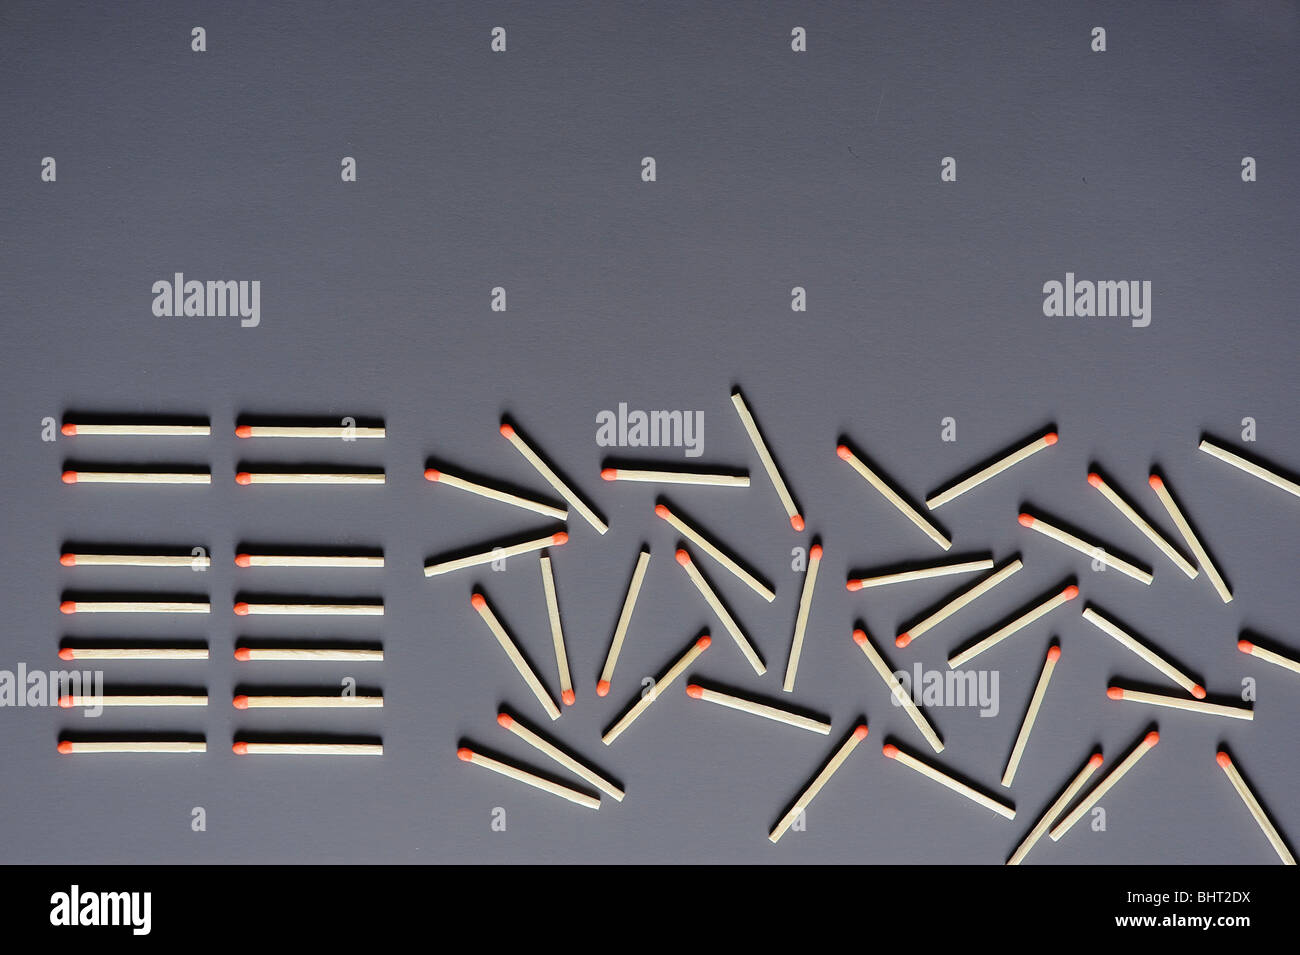 Matches lined up and scattered on a surface Stock Photo